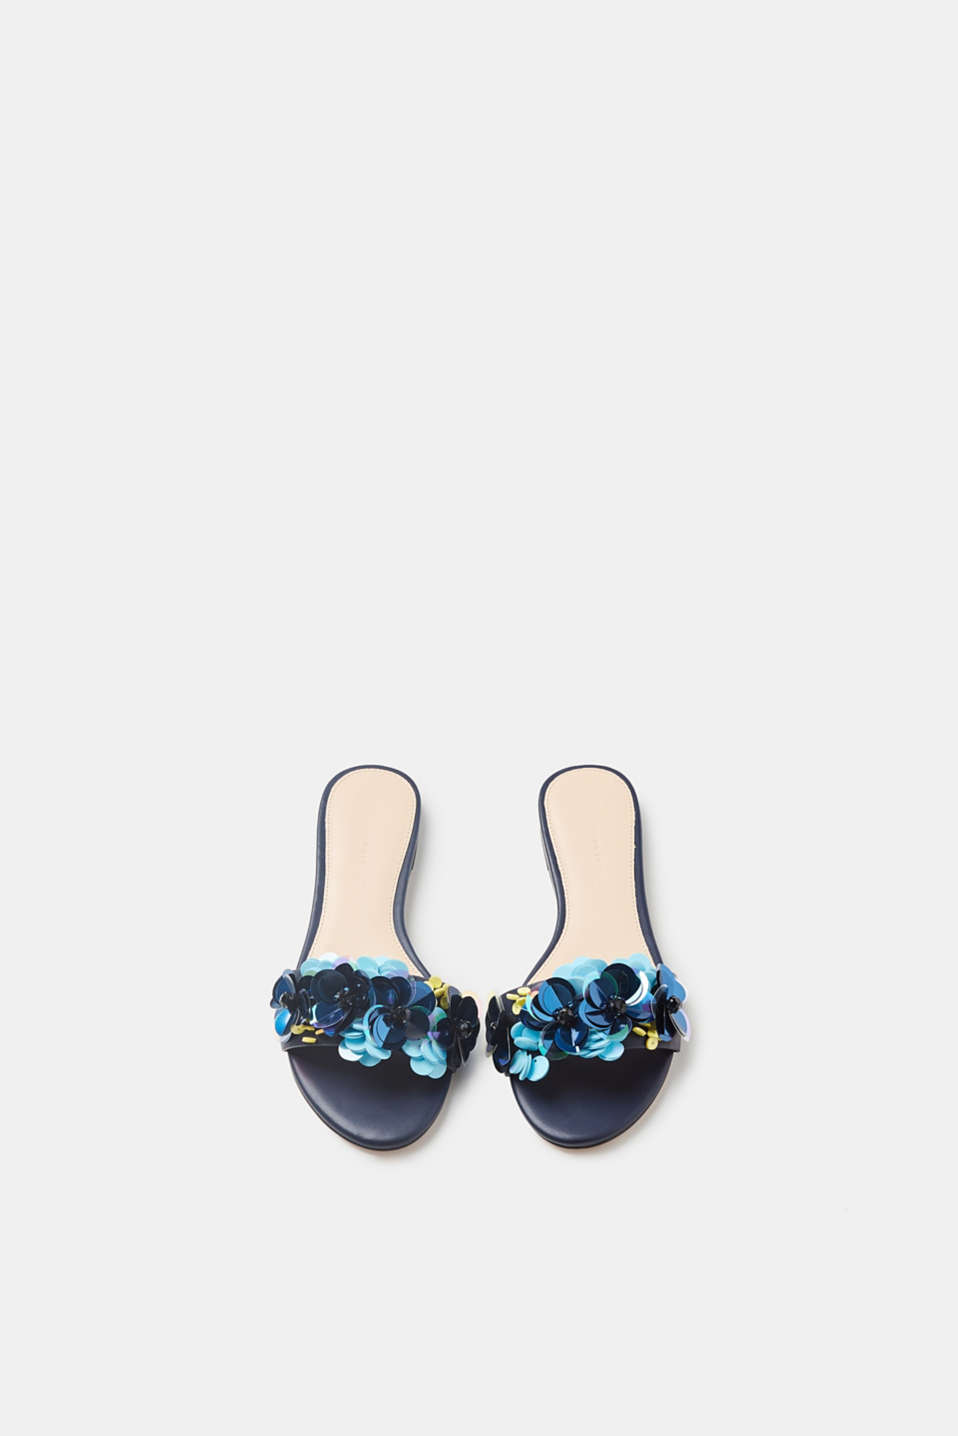 Mules with sequins arranged in a floral style